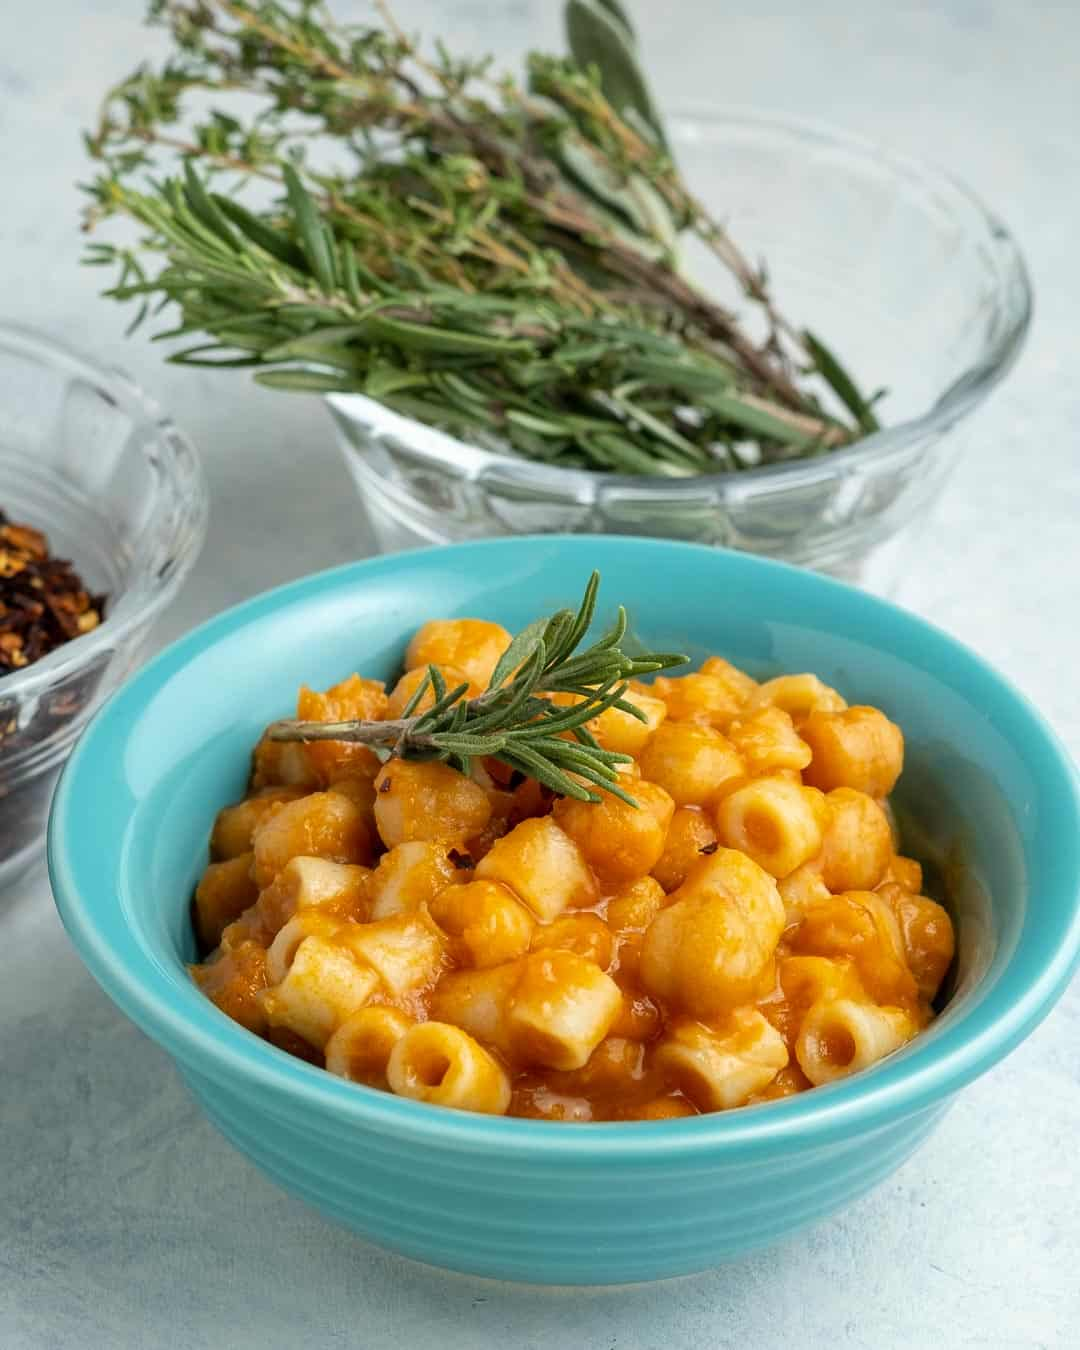 A teal bowl of pasta and chickpeas, with a sprig of rosemary on top, and a bowl of rosemary sprigs and red pepper flakes in the background.